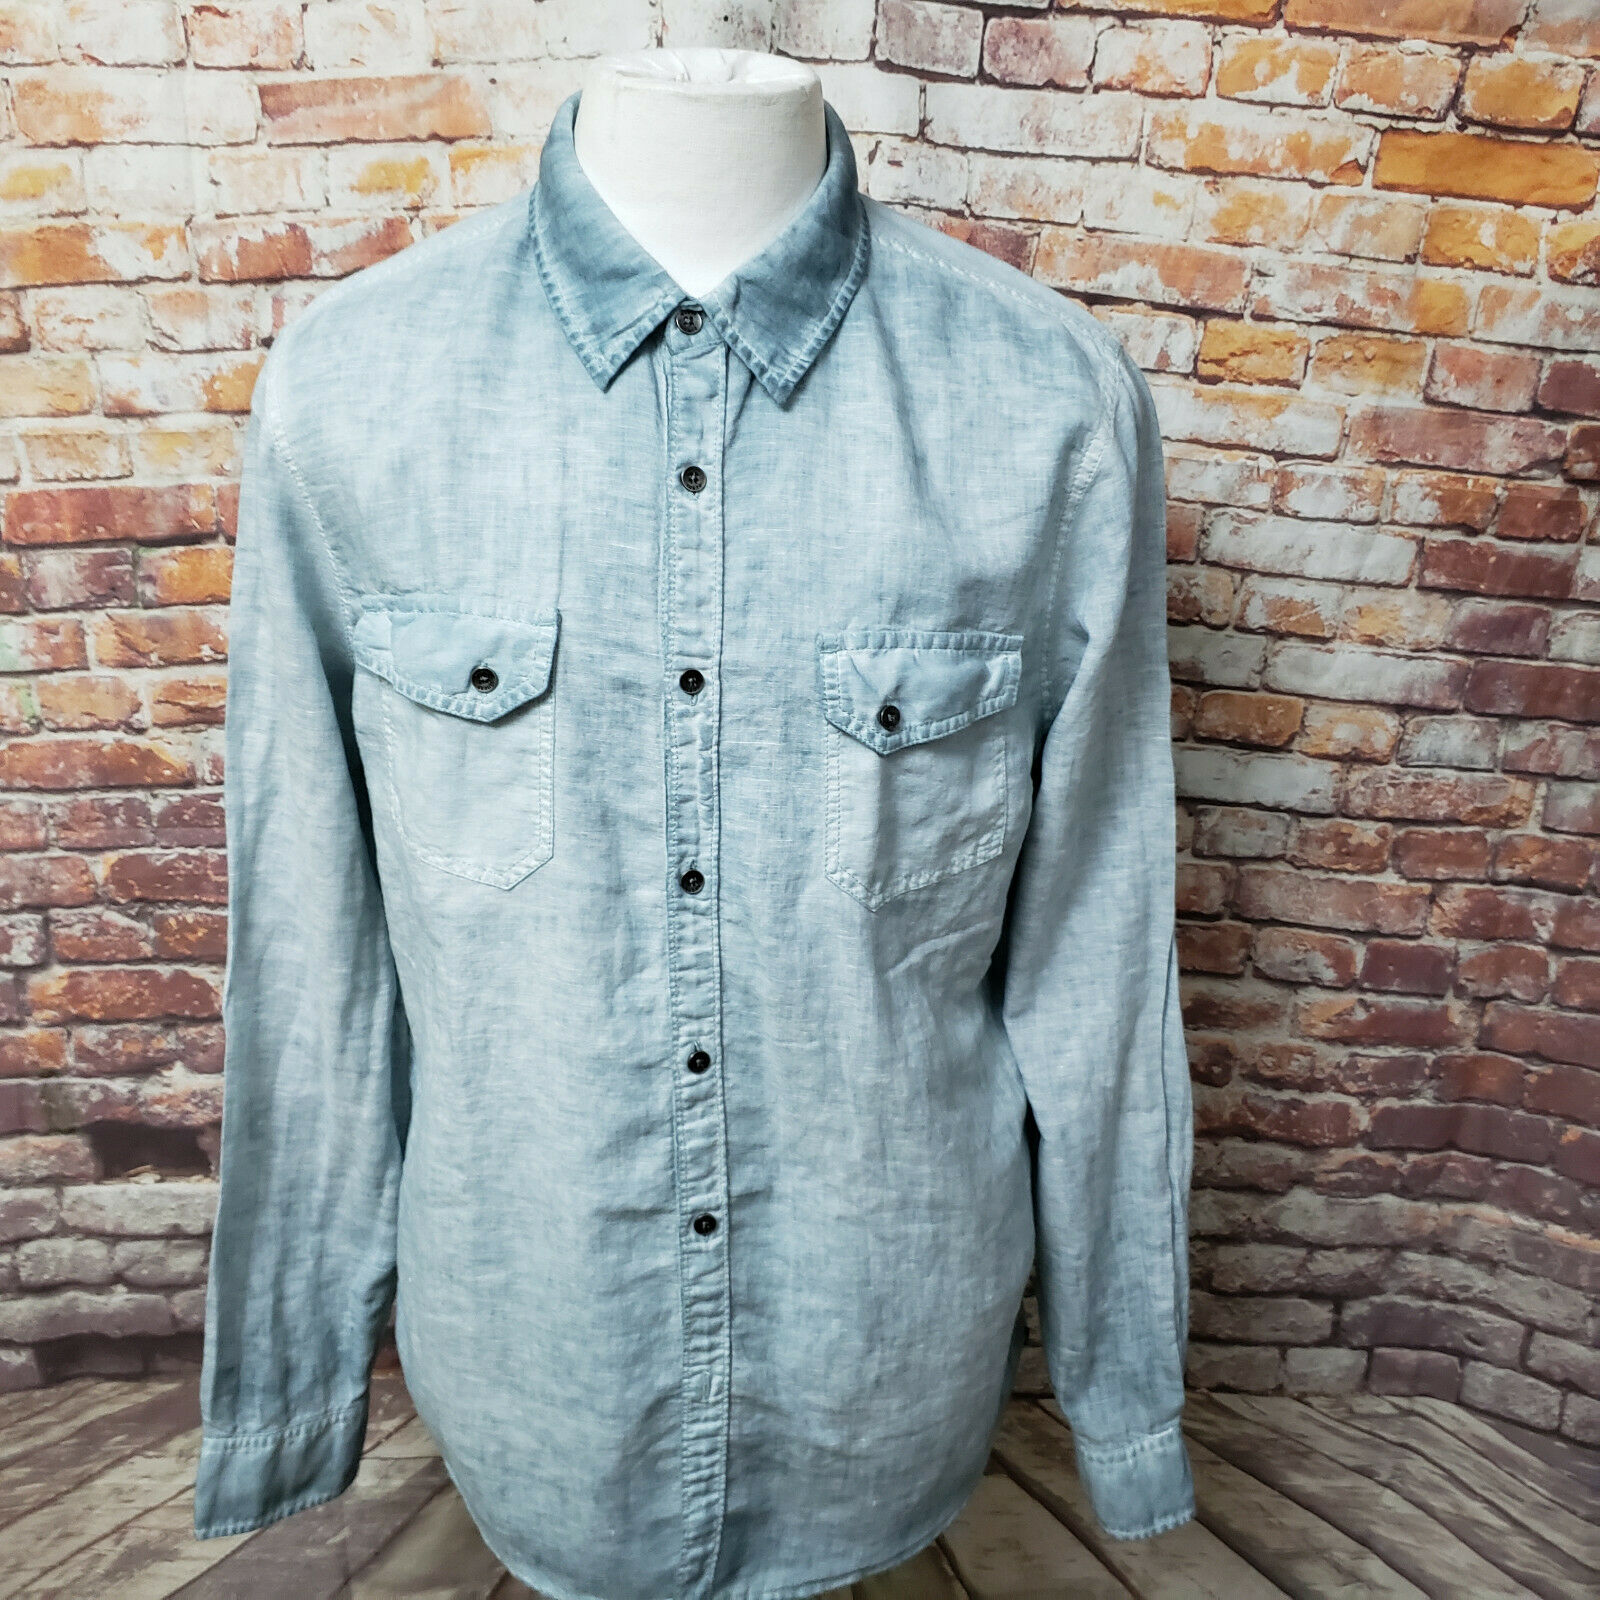 GUESS MEN'S ACID WASHED DISTRESSED SLIM FIT LONG SLEEVE SHIRT SIZE L A88-28